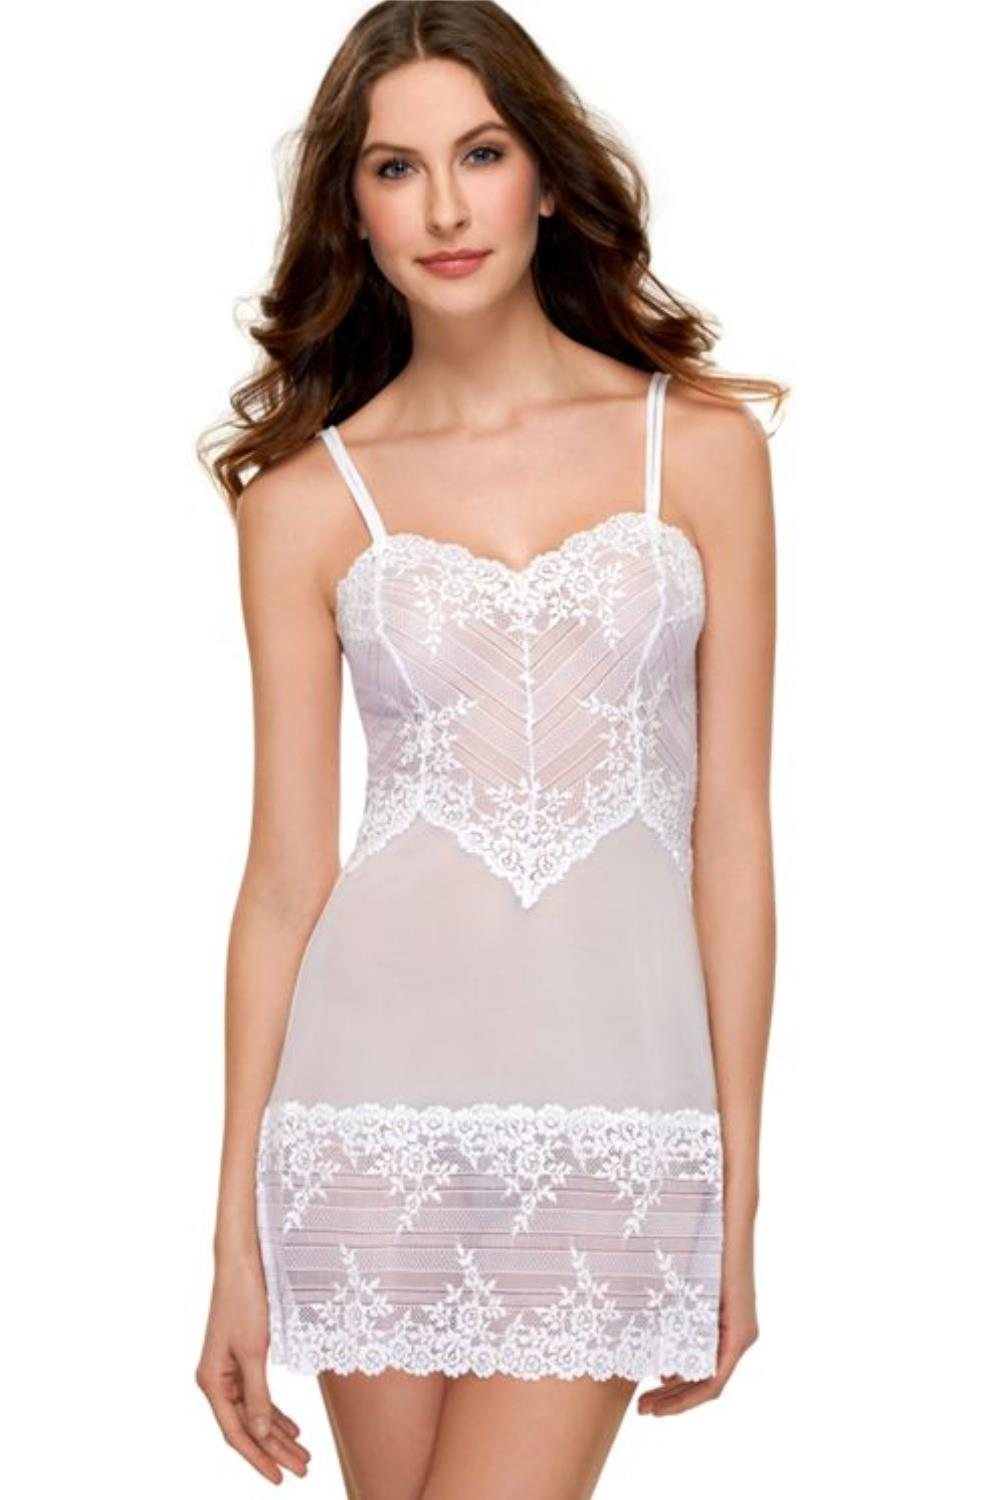 2ae3bd9464b03 Wacoal Embrace Lace Chemise 814191 - My Top Drawer